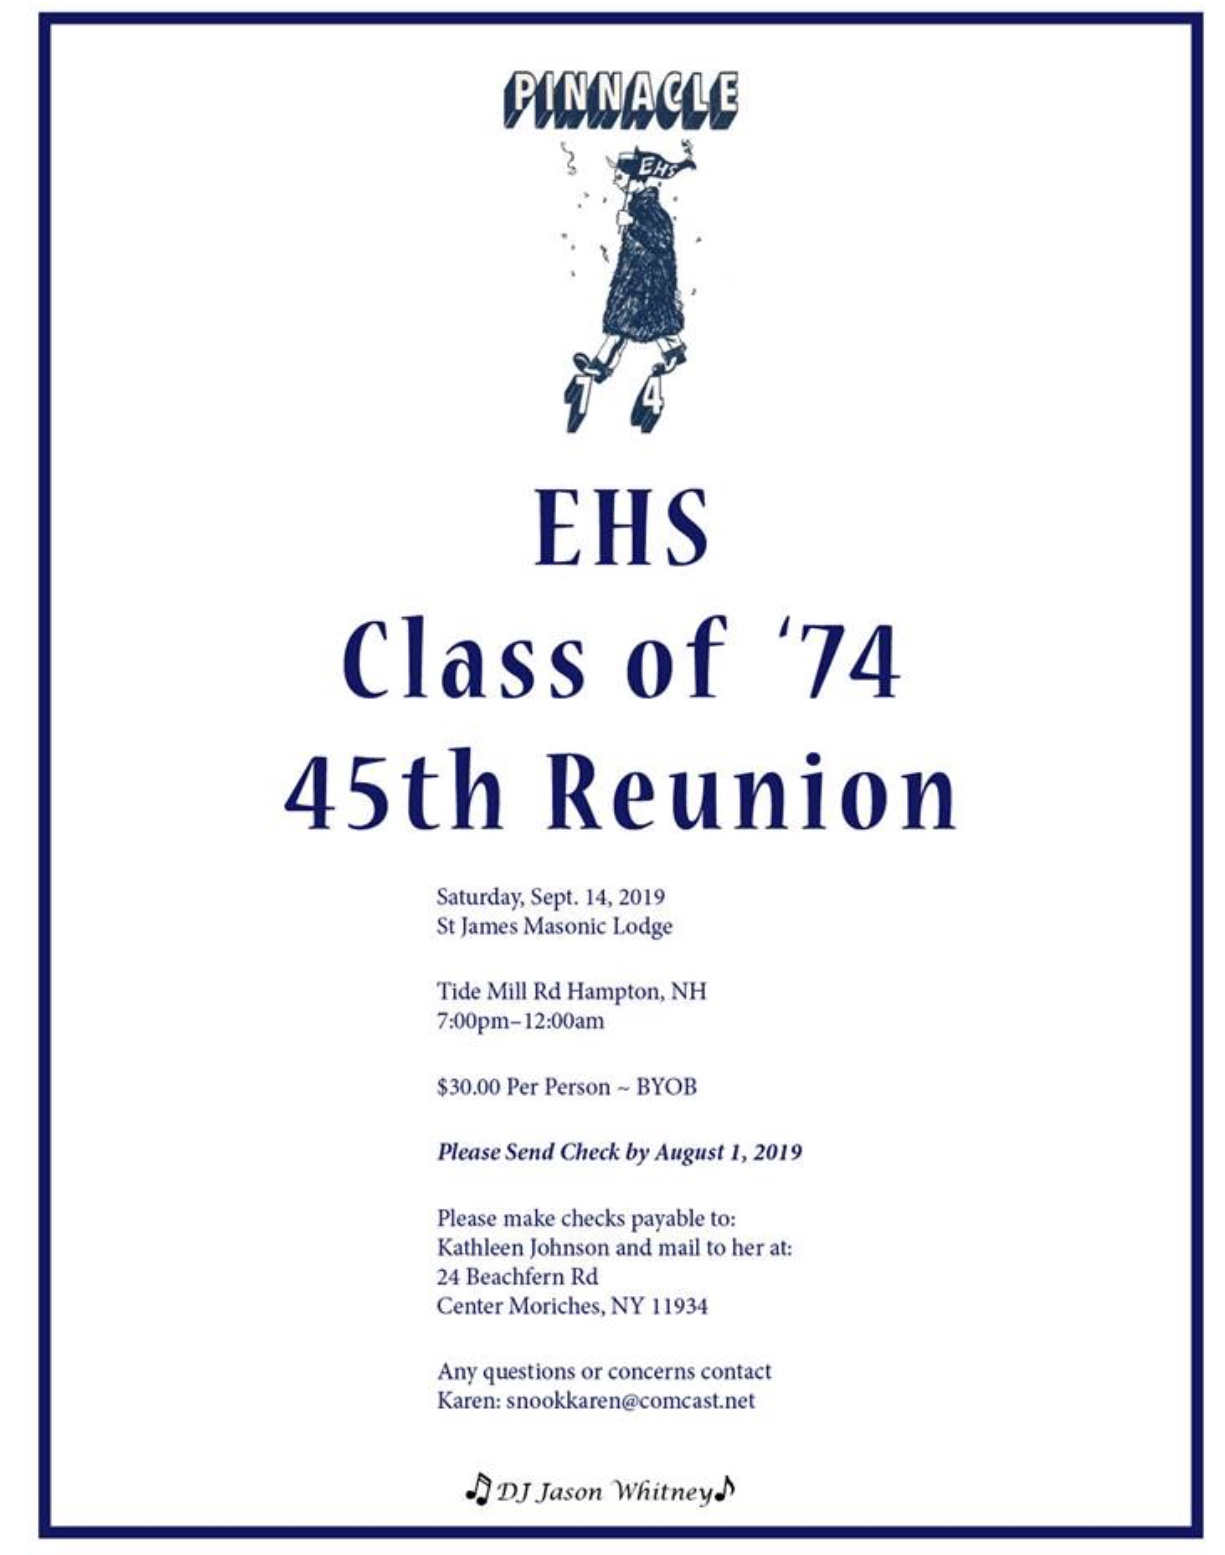 Class of '74 - 45th Reunion